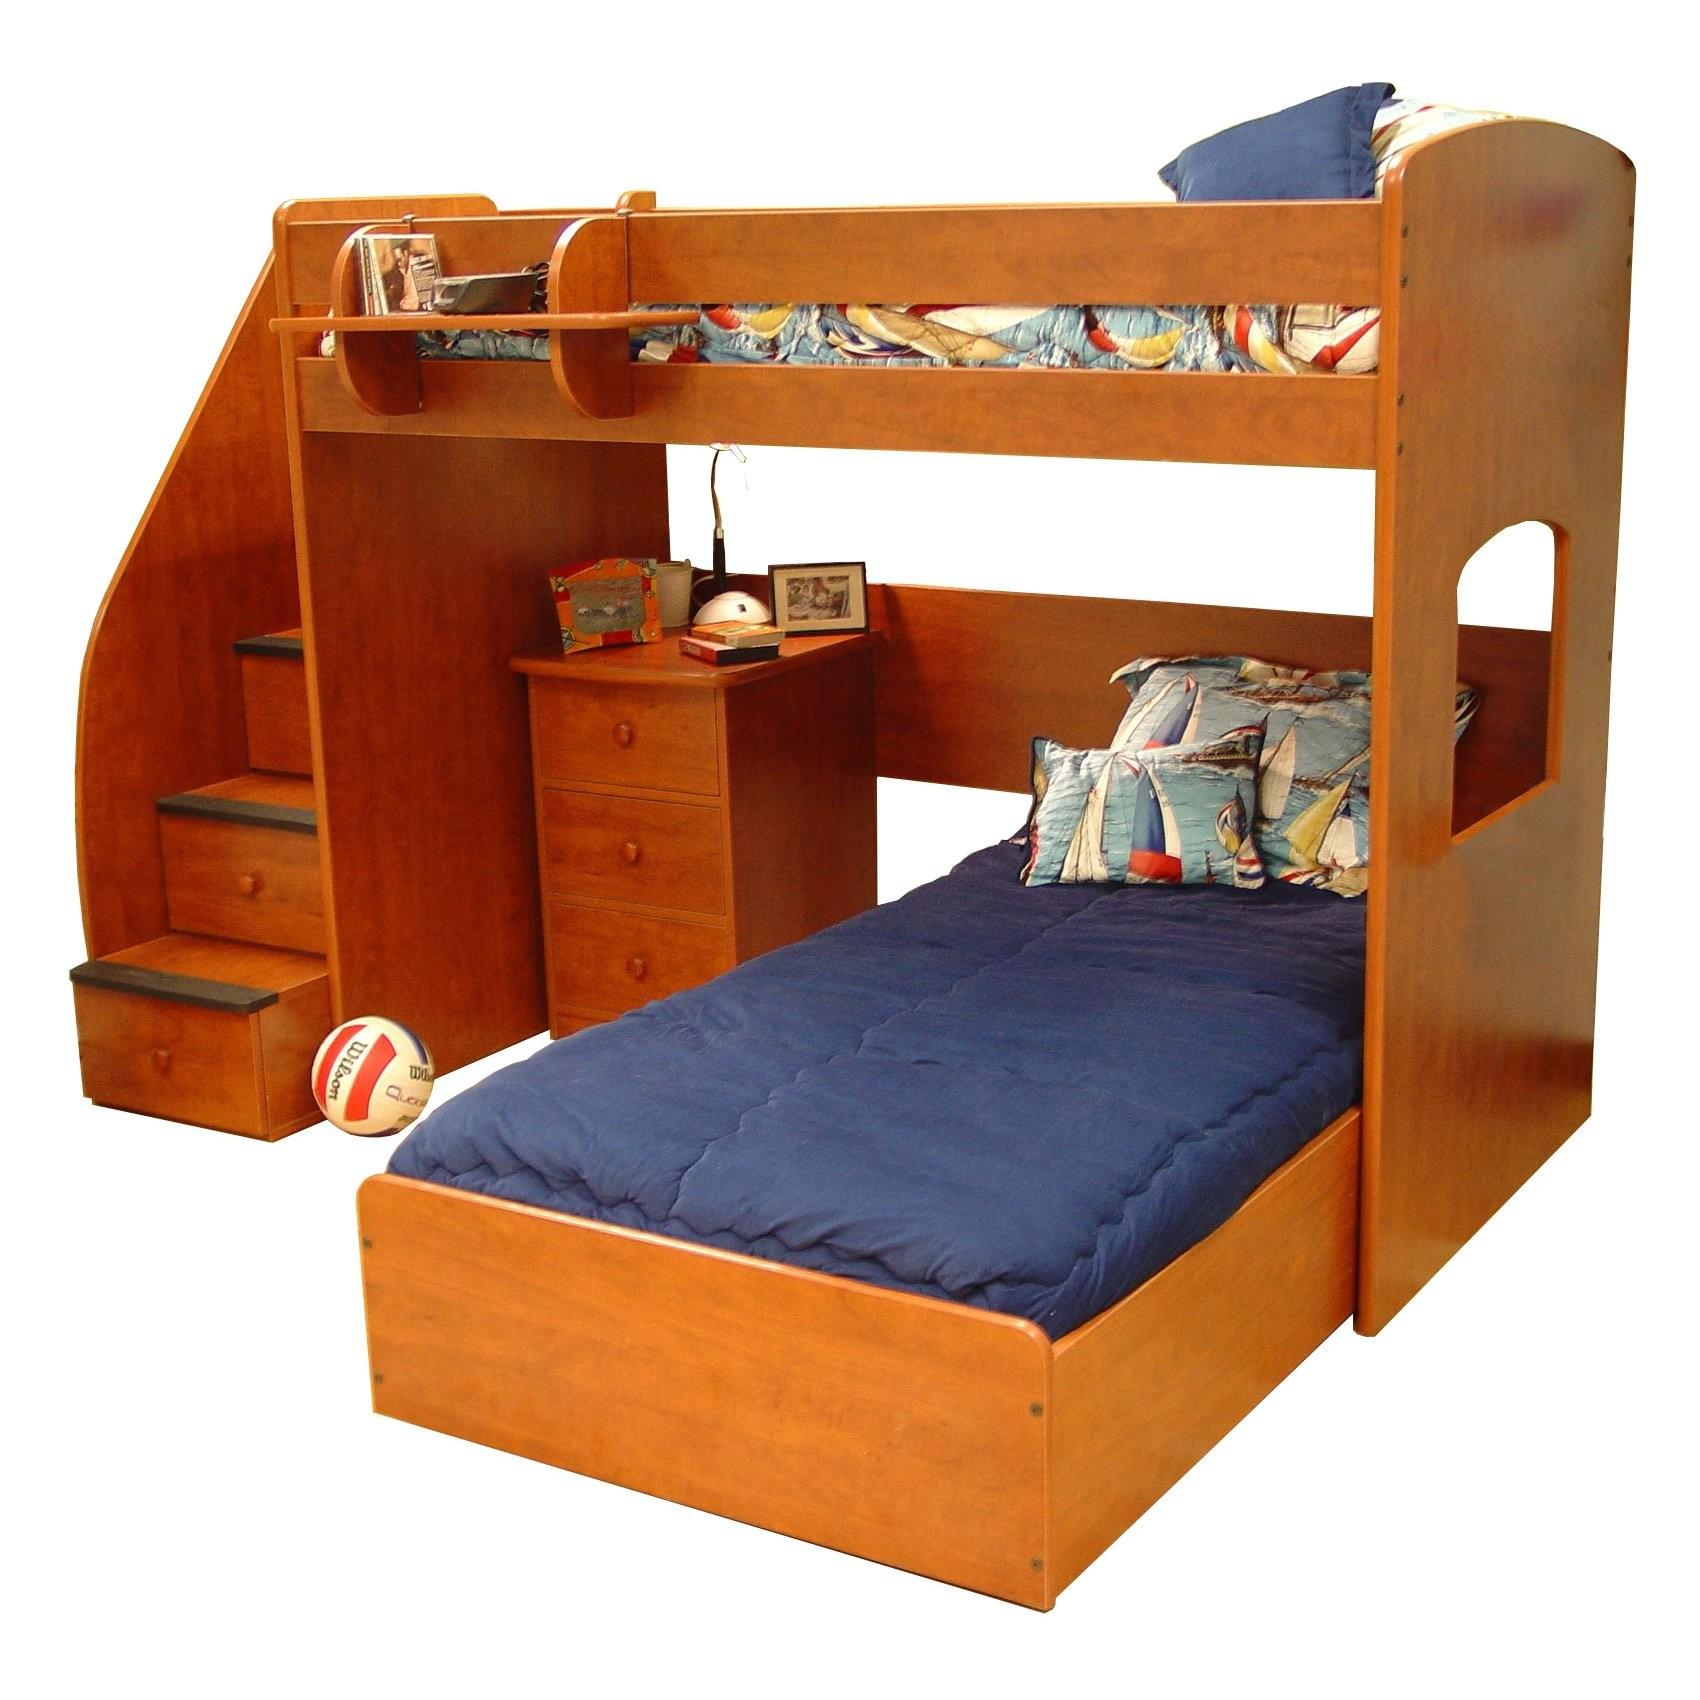 40 Unbelievable Boy Beds That You Ll Want To Live In Trends For 2020 Great Photos Decoratorist